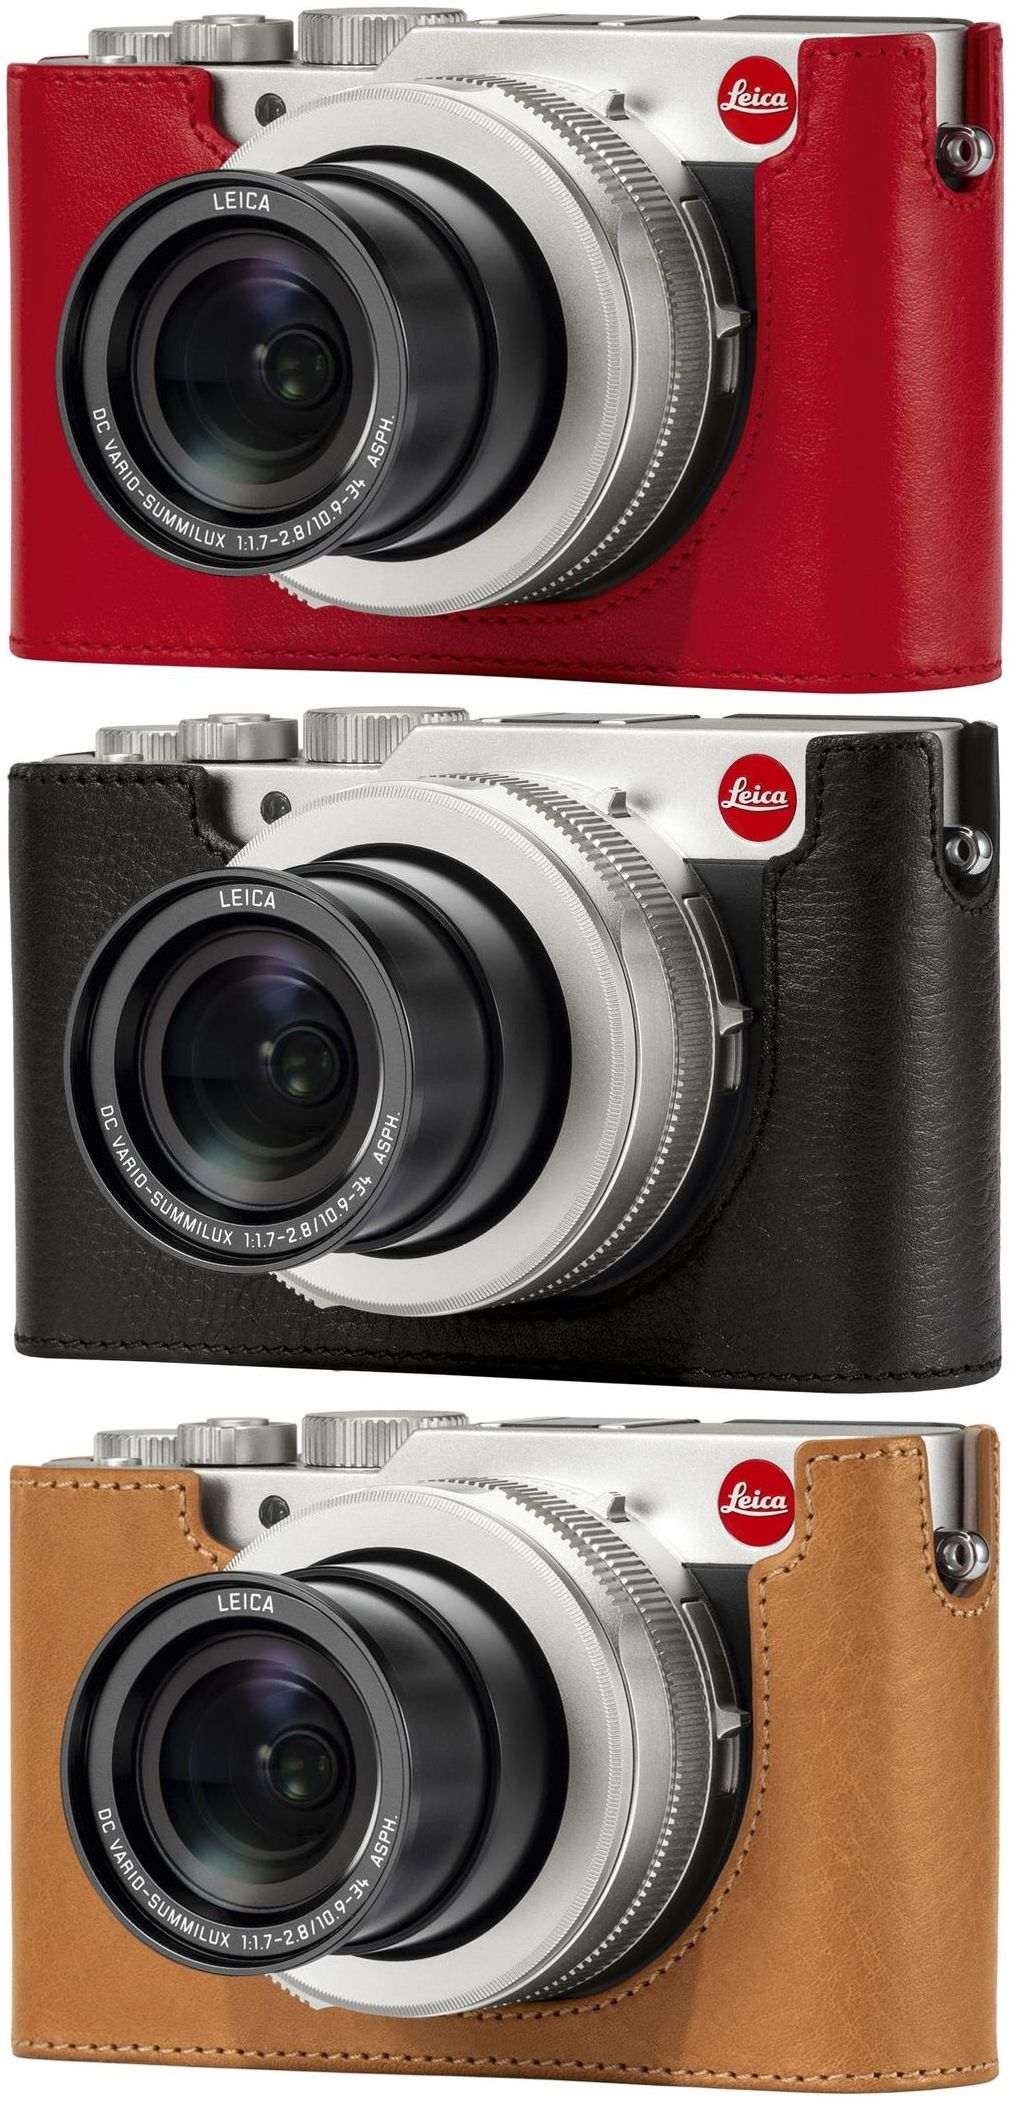 Red Leica Protector Case for D-Lux 7 Compact Camera